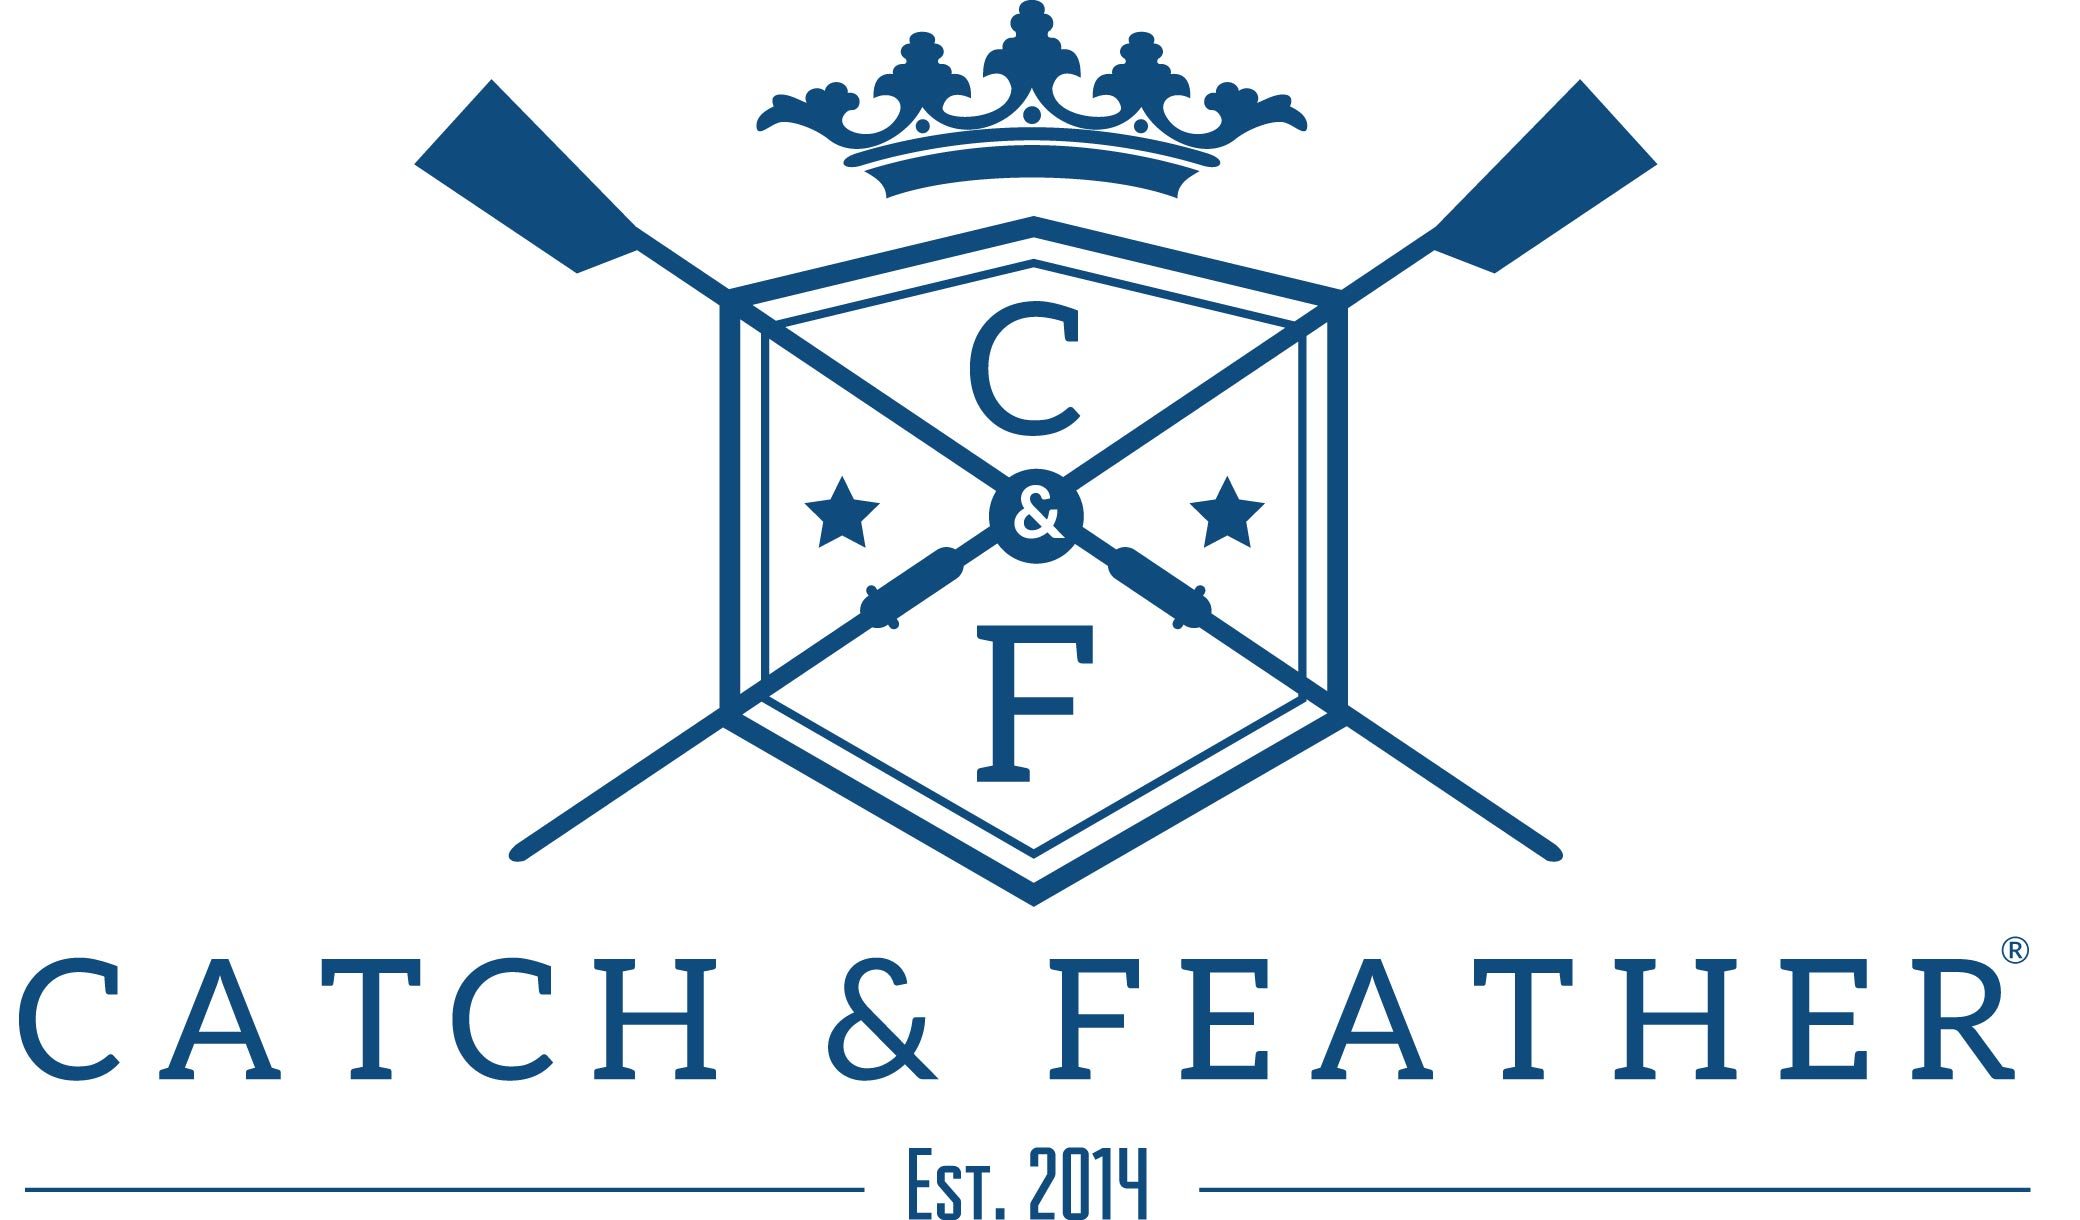 Catch & Feather | Rowing Apparel Clothing, Gear & Accessories